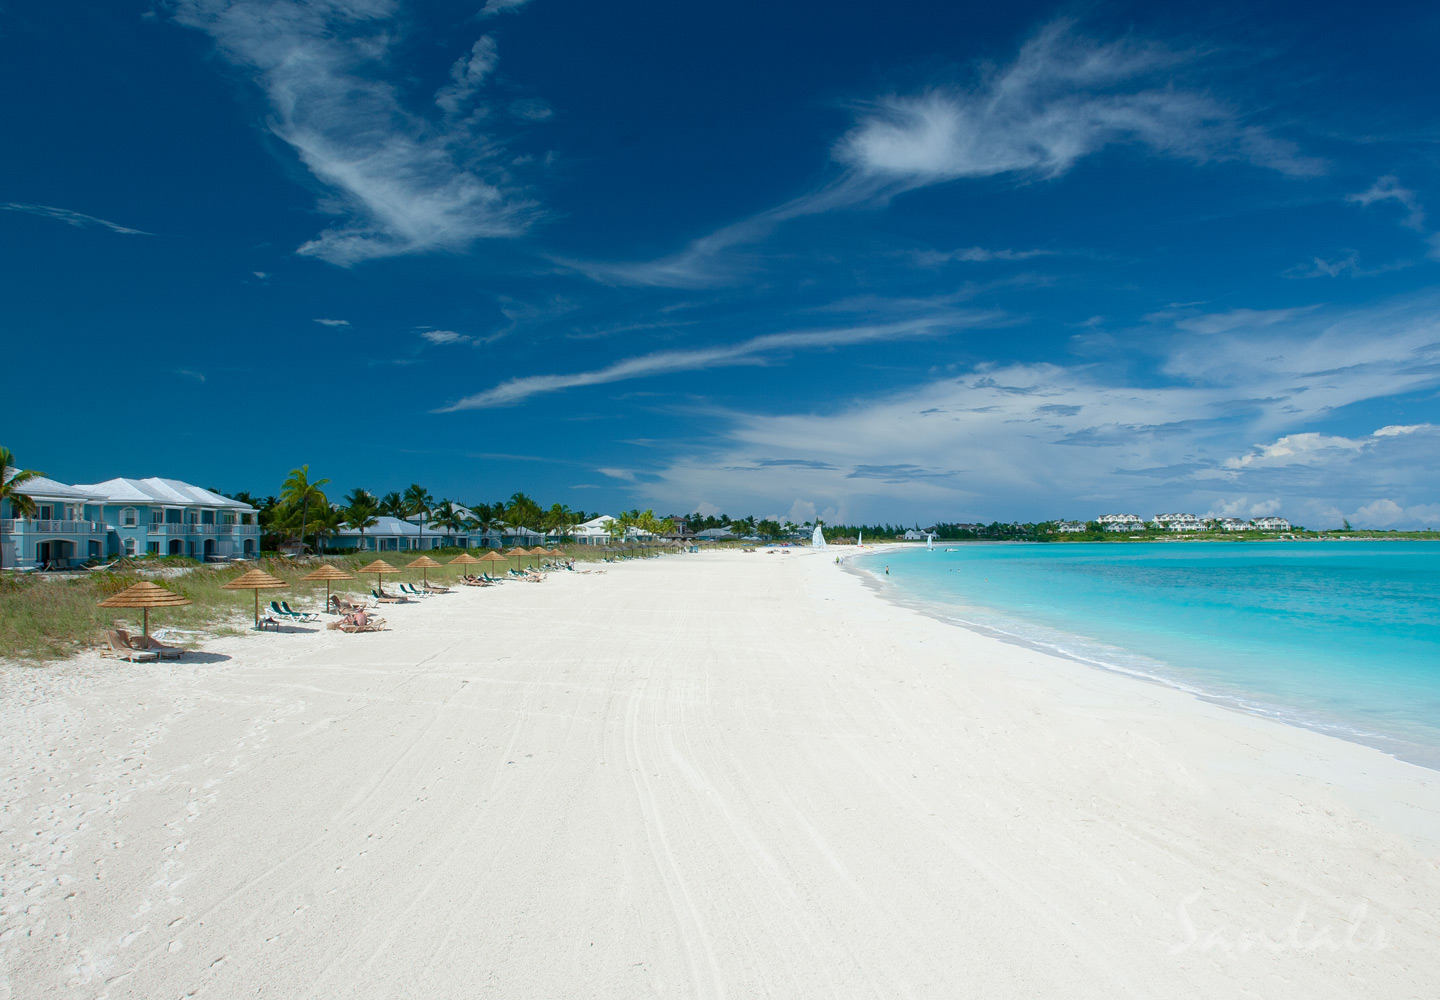 Travel Agency All-Inclusive Resort Sandals Emerald Bay 057